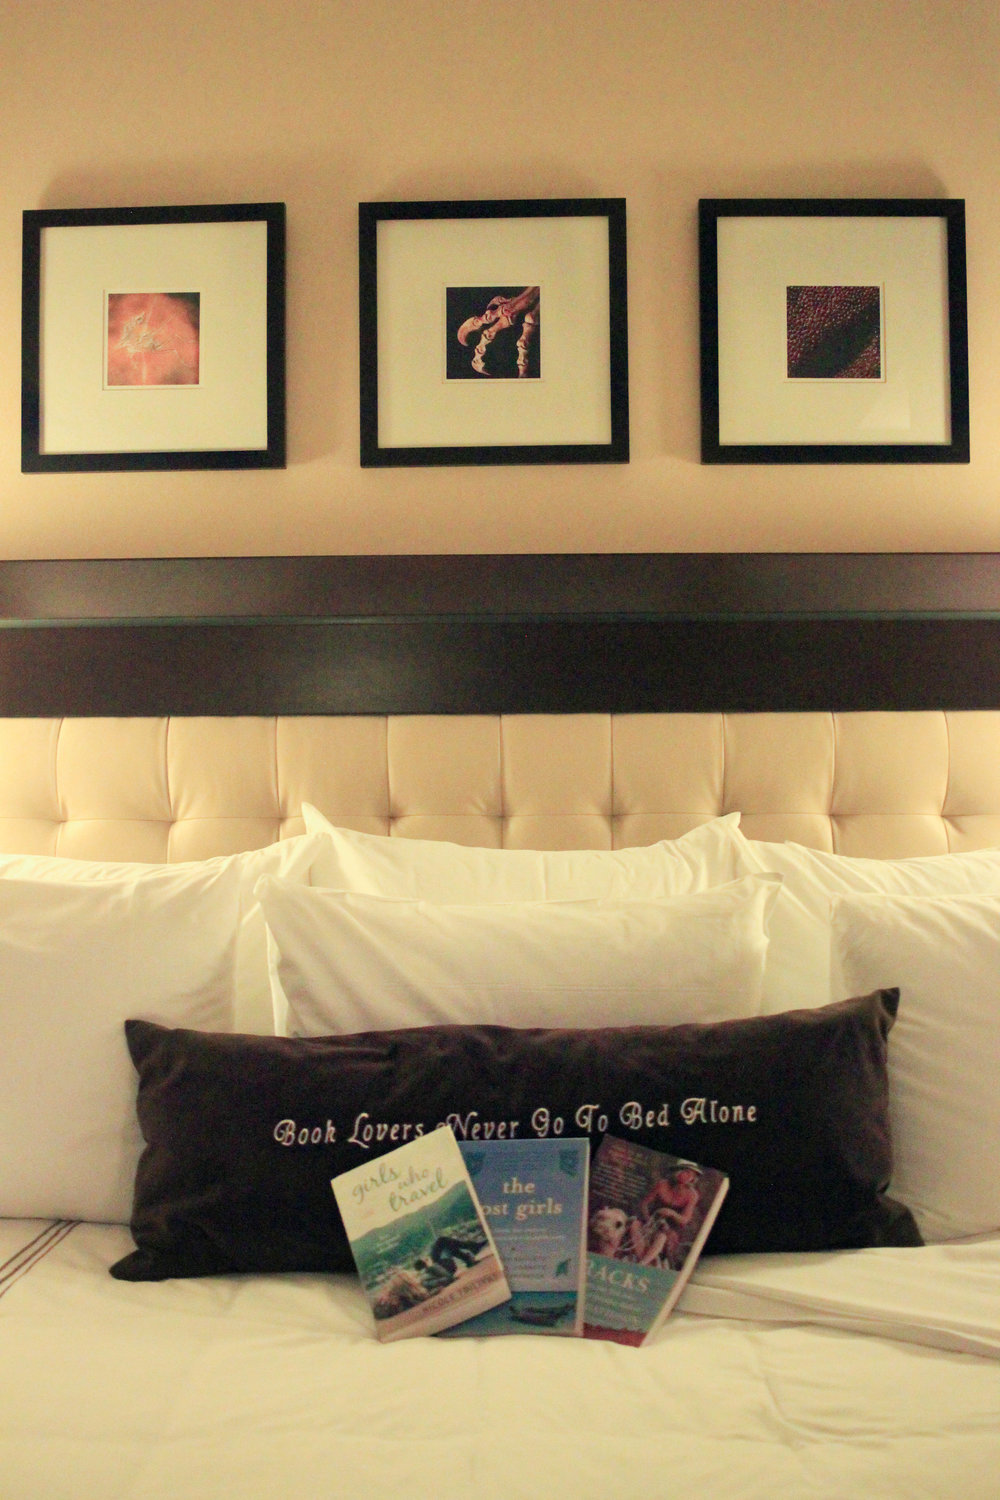 "The pillow reads ""Book lovers never go to bed alone."" Above are framed photos of fossils line the wall."